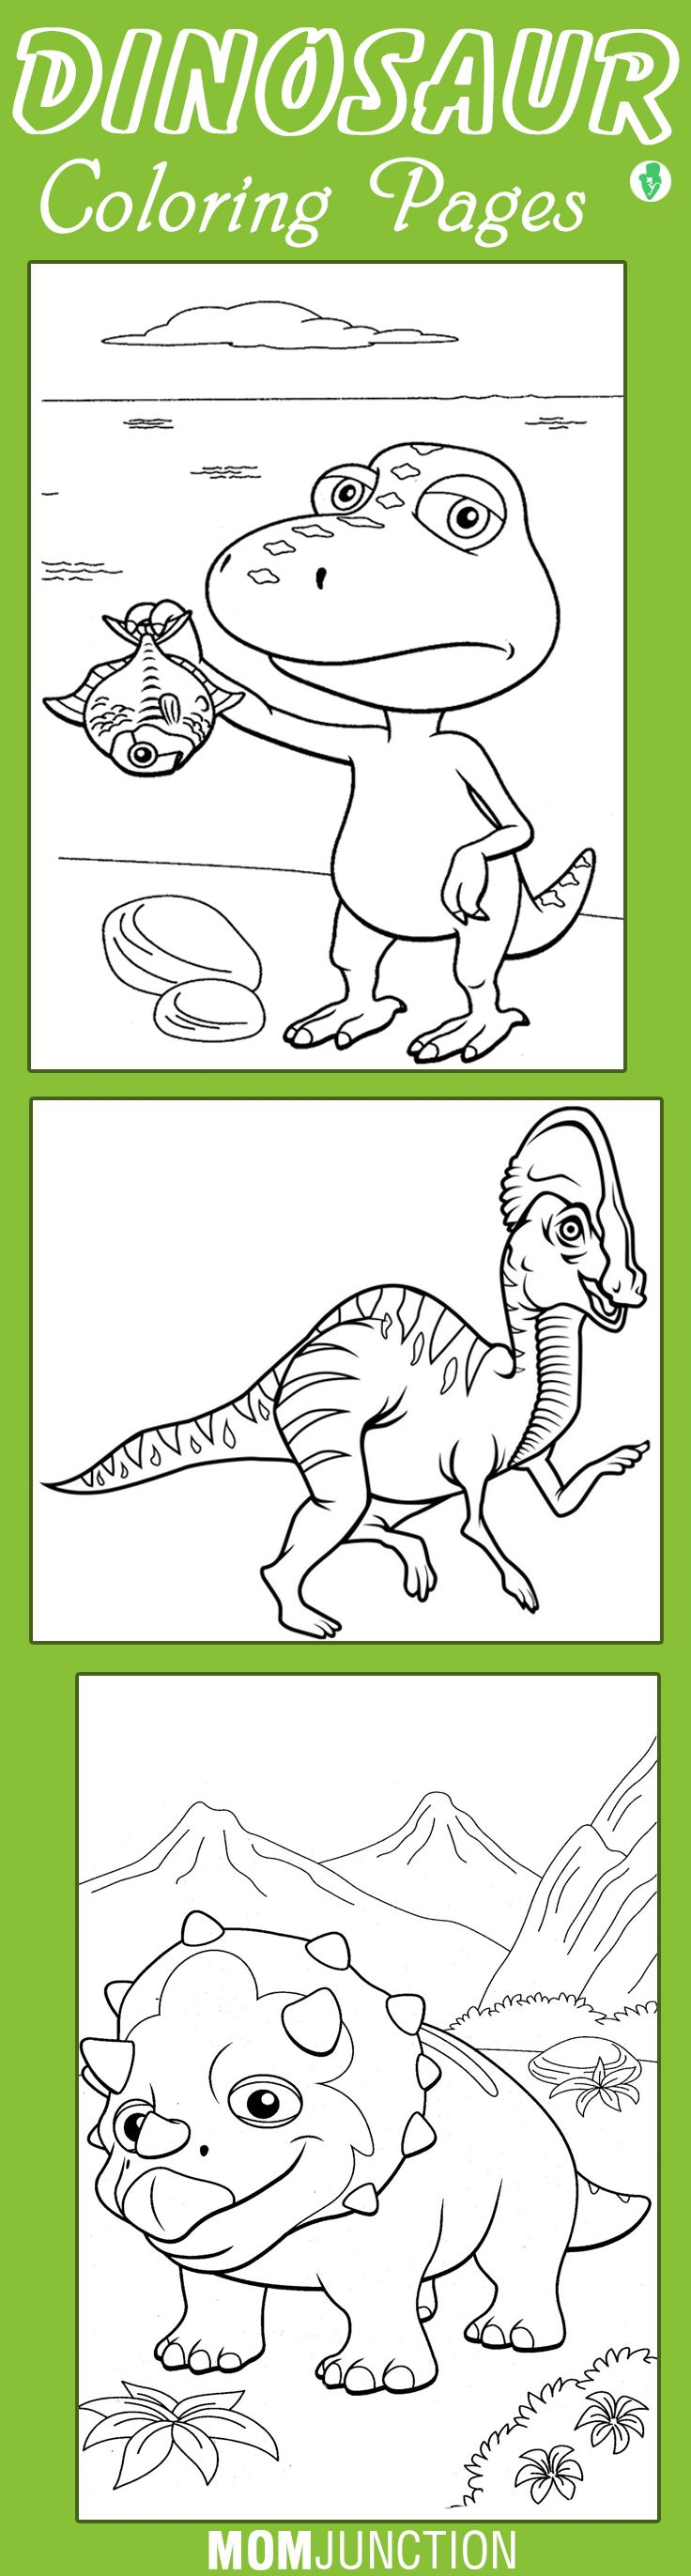 Real looking dinosaur coloring pages - 10 Cute Dinosaur Train Coloring Pages Your Toddler Will Love To Color